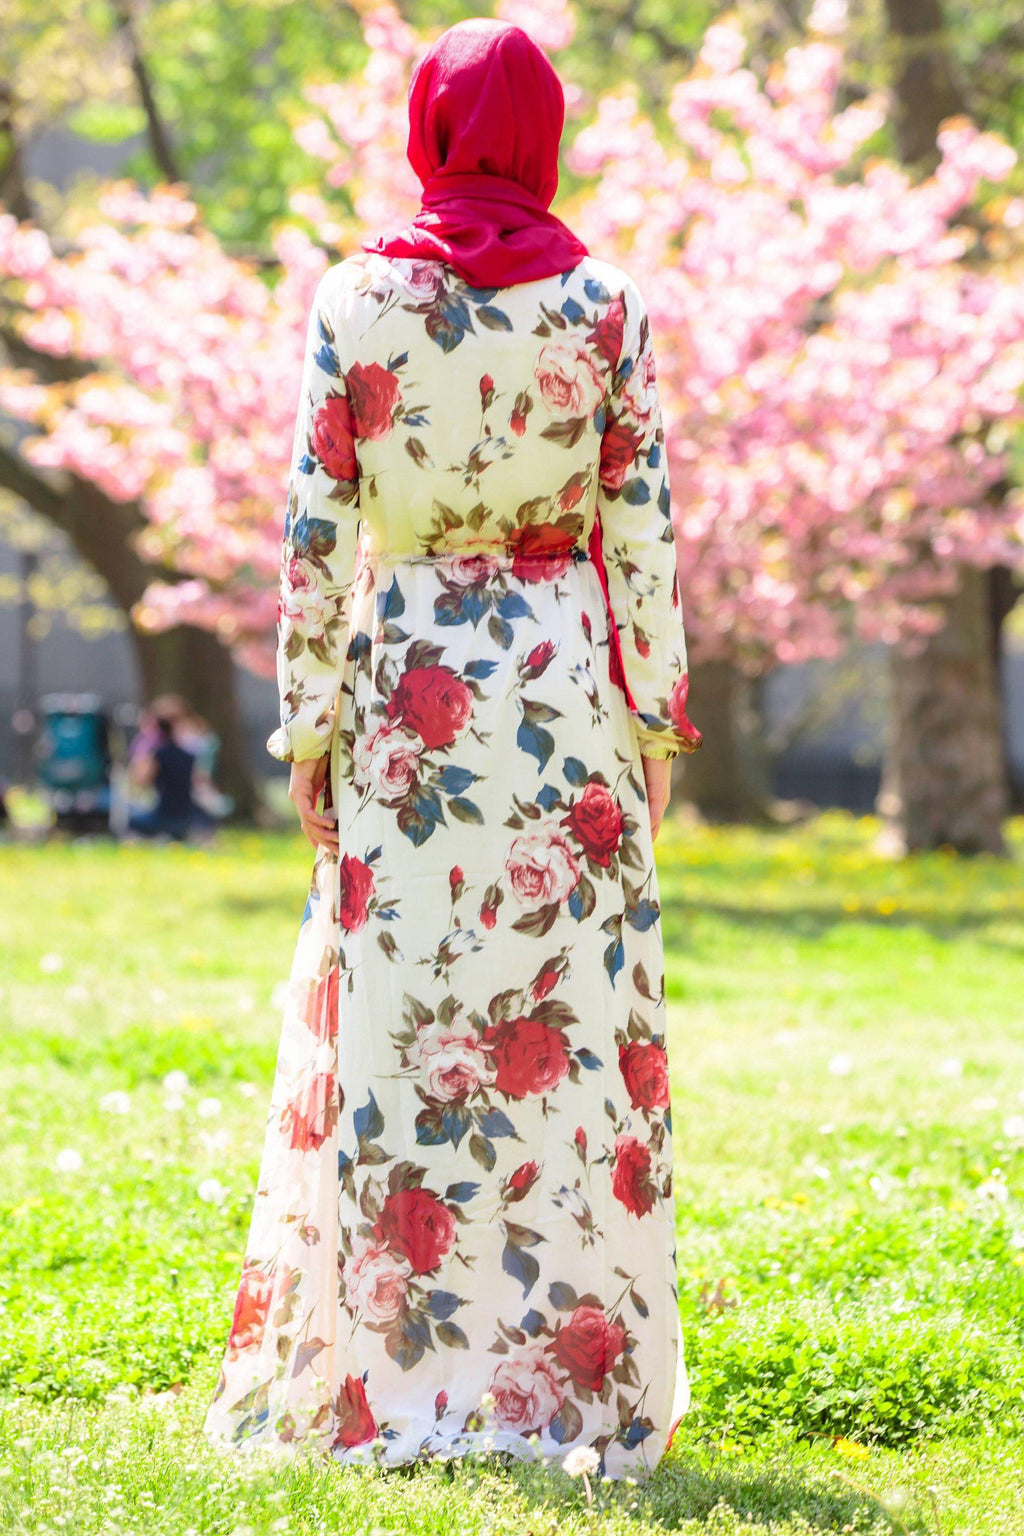 Red Floral Drawstring Maxi Dress - Abaya, Hijabs, Jilbabs, on sale now at UrbanModesty.com